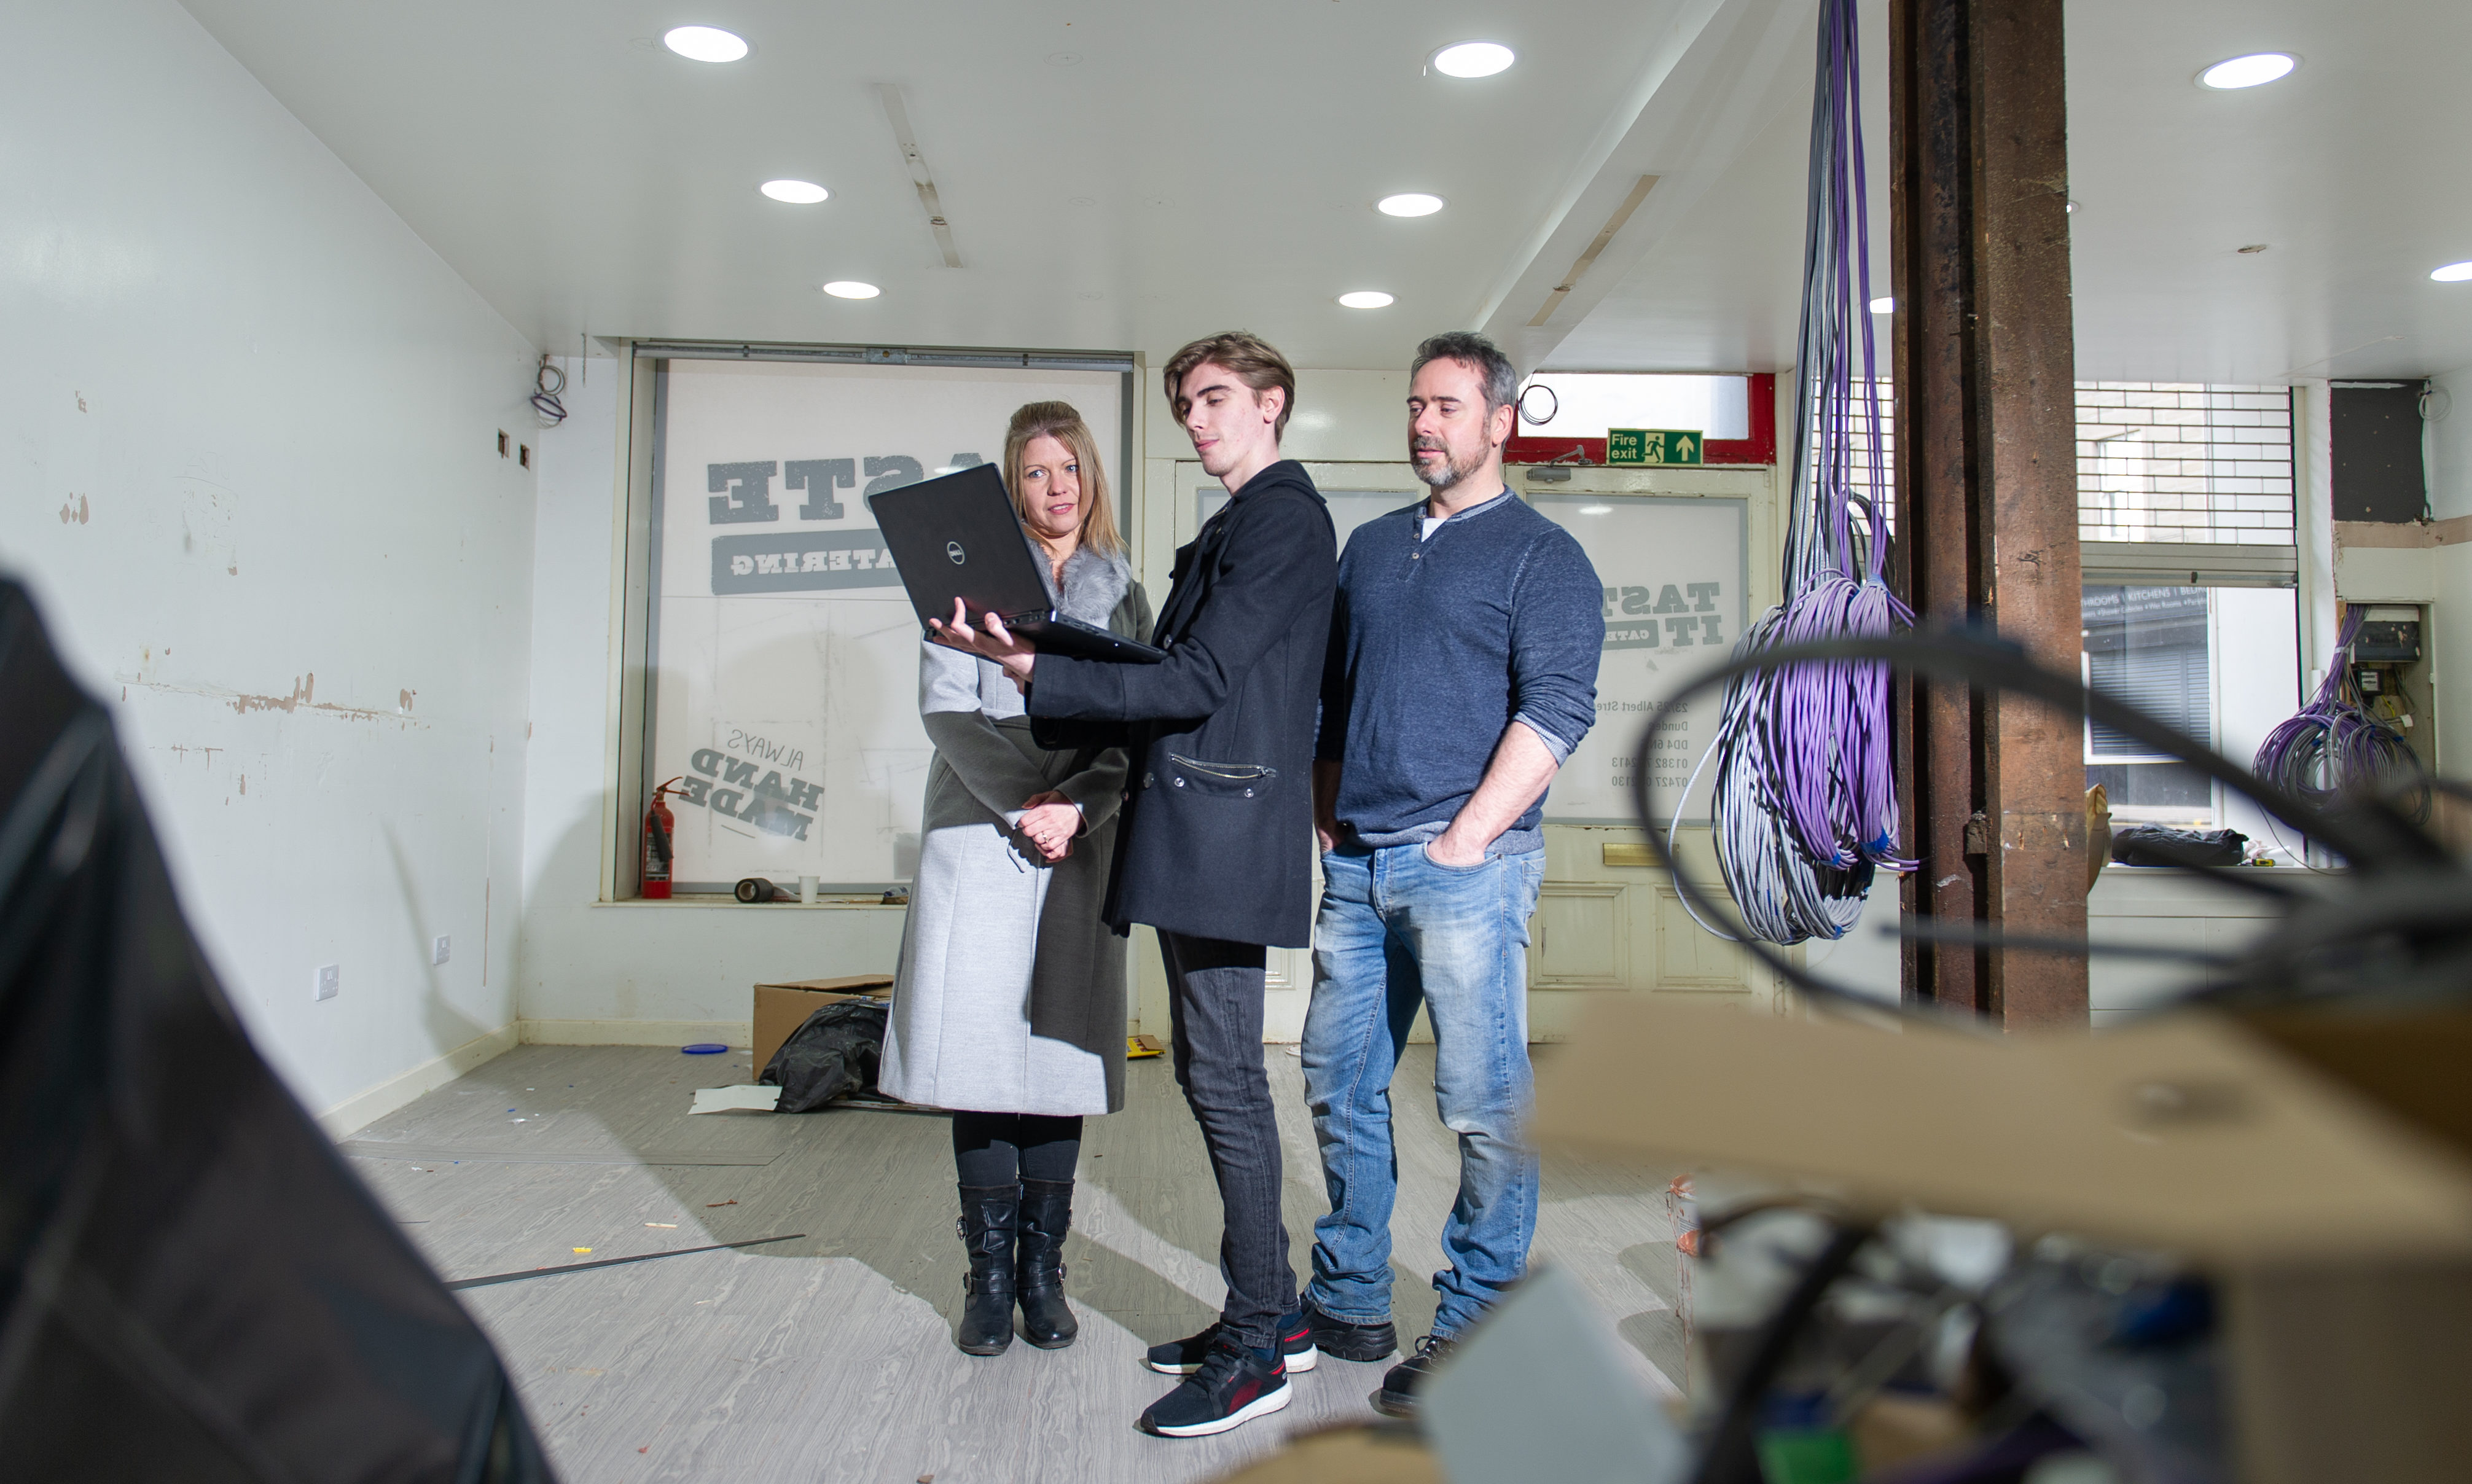 Ashley Donaldson, Drew Douglas and Gavin Innes in the retail unit which is being transformed into a computer games hub